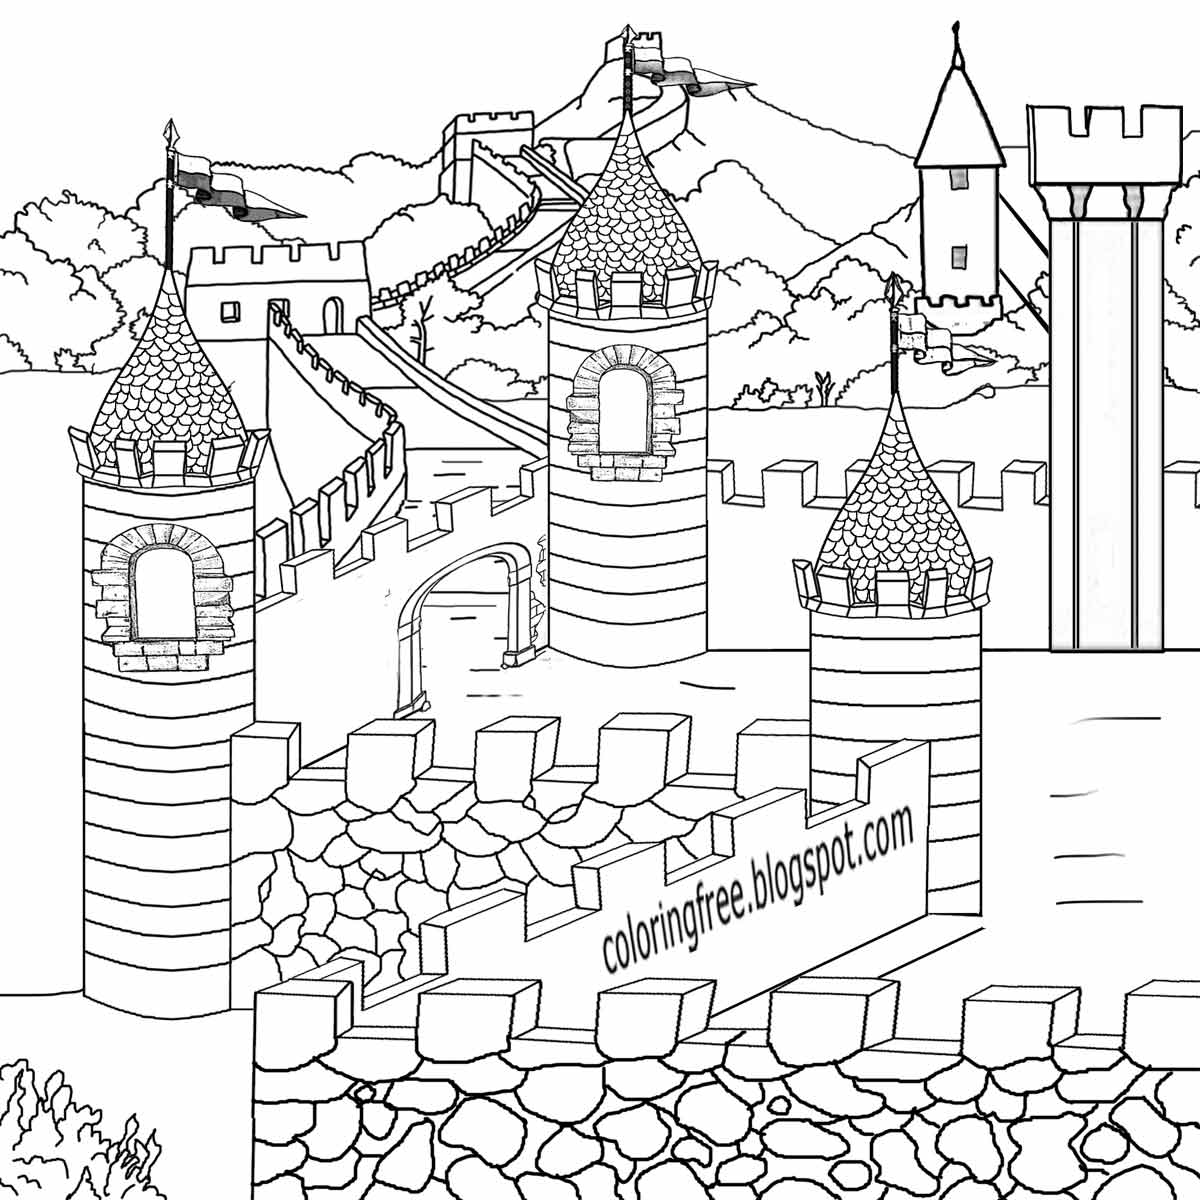 medieval colouring sheets bluebonkers medieval knights in armor coloring sheets sheets medieval colouring